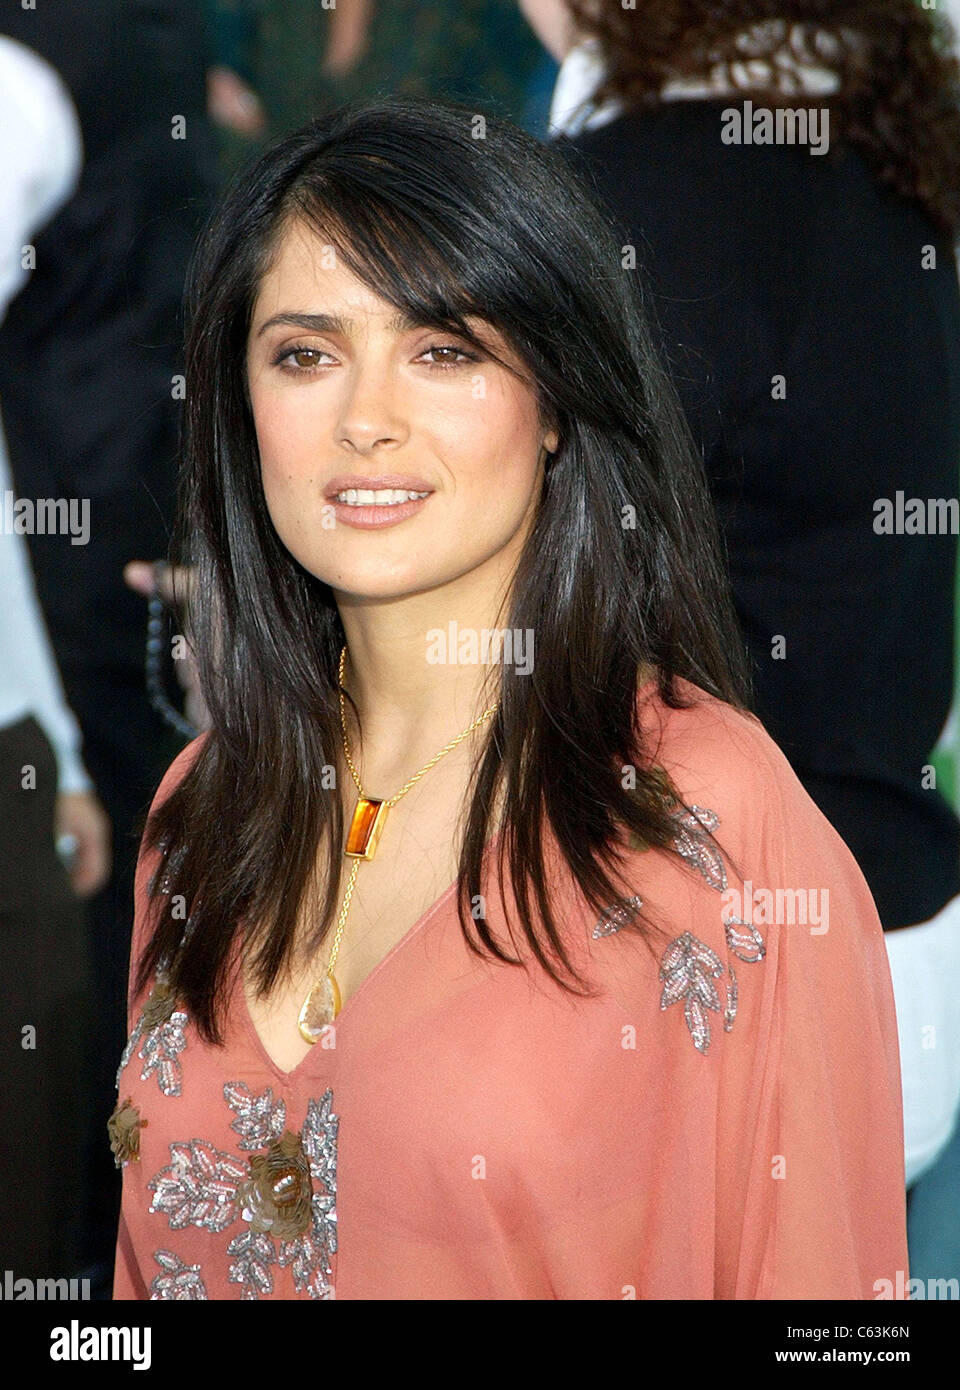 Salma Hayek at arrivals for 20th IFP Independent Spirit Awards, Los Angeles, CA, Saturday, February 26, 2005. Photo - Stock Image